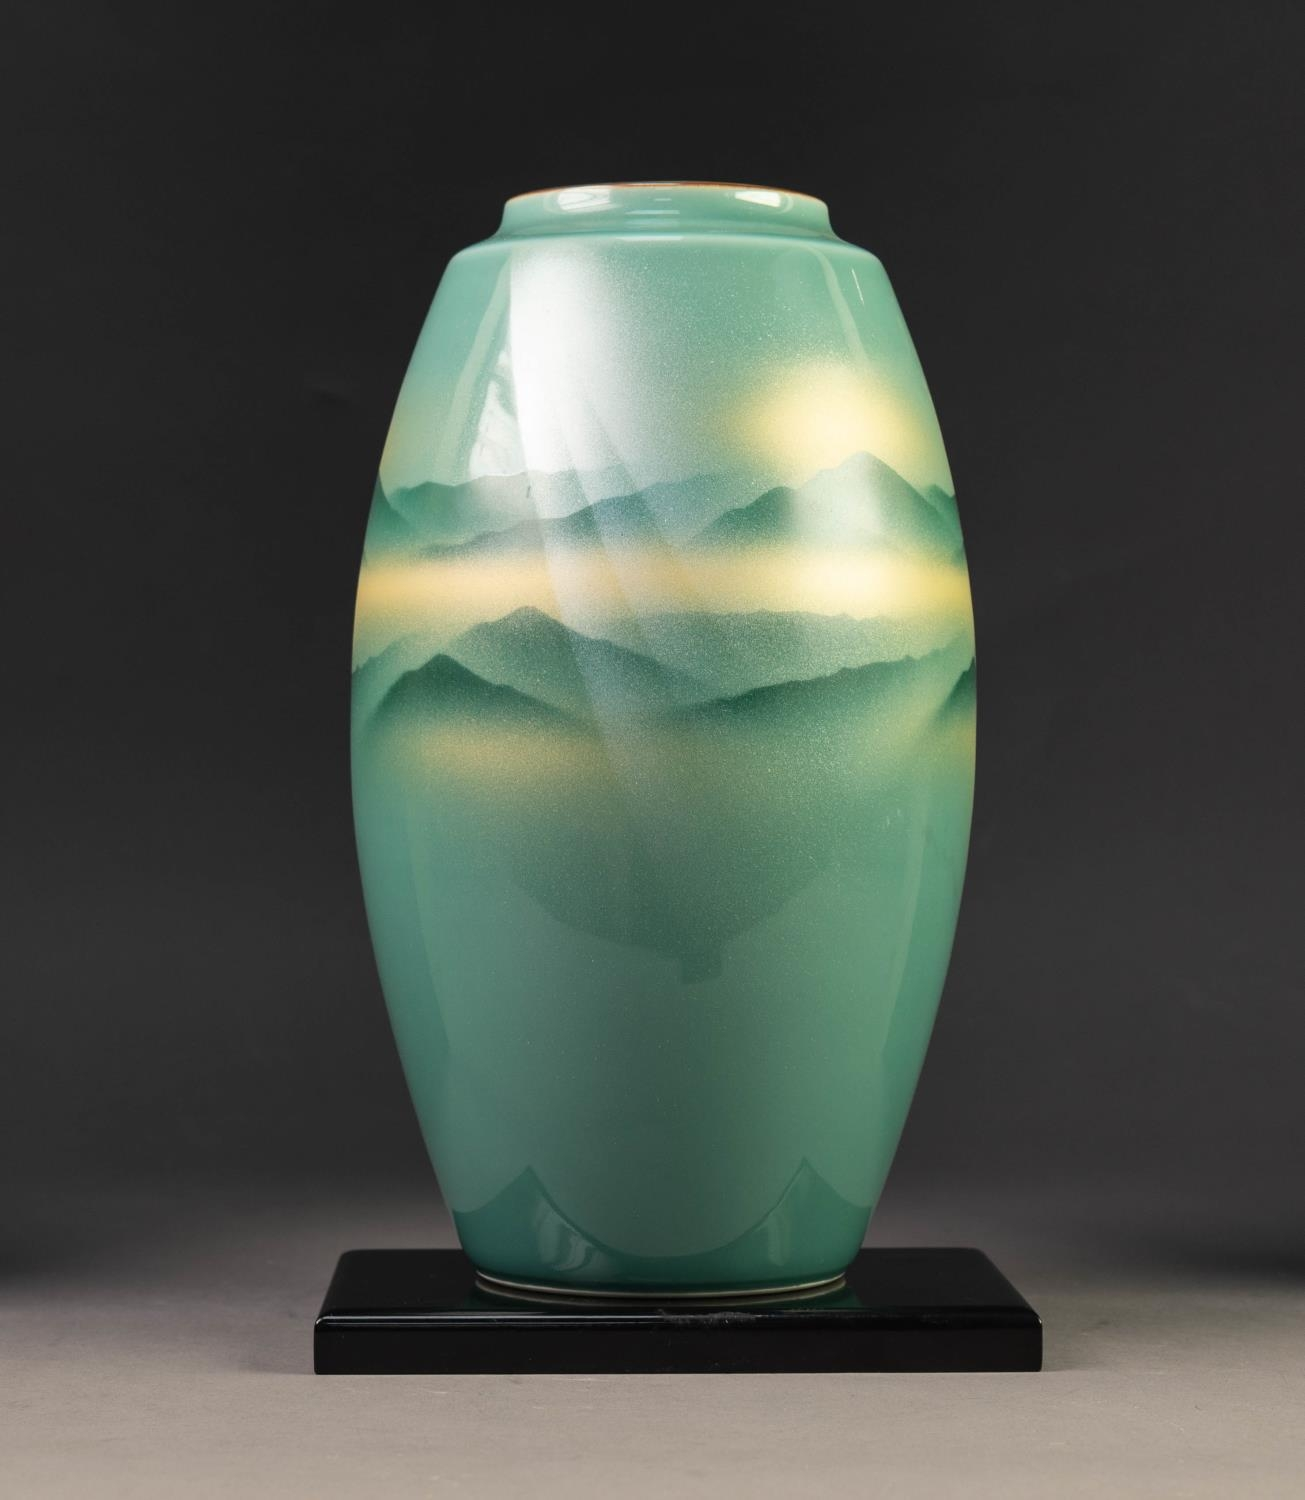 MODERN JAPANESE KUTANI WARE PORCELAIN VASE, of ovoid form, decorated in sprayed shades of green - Image 3 of 5